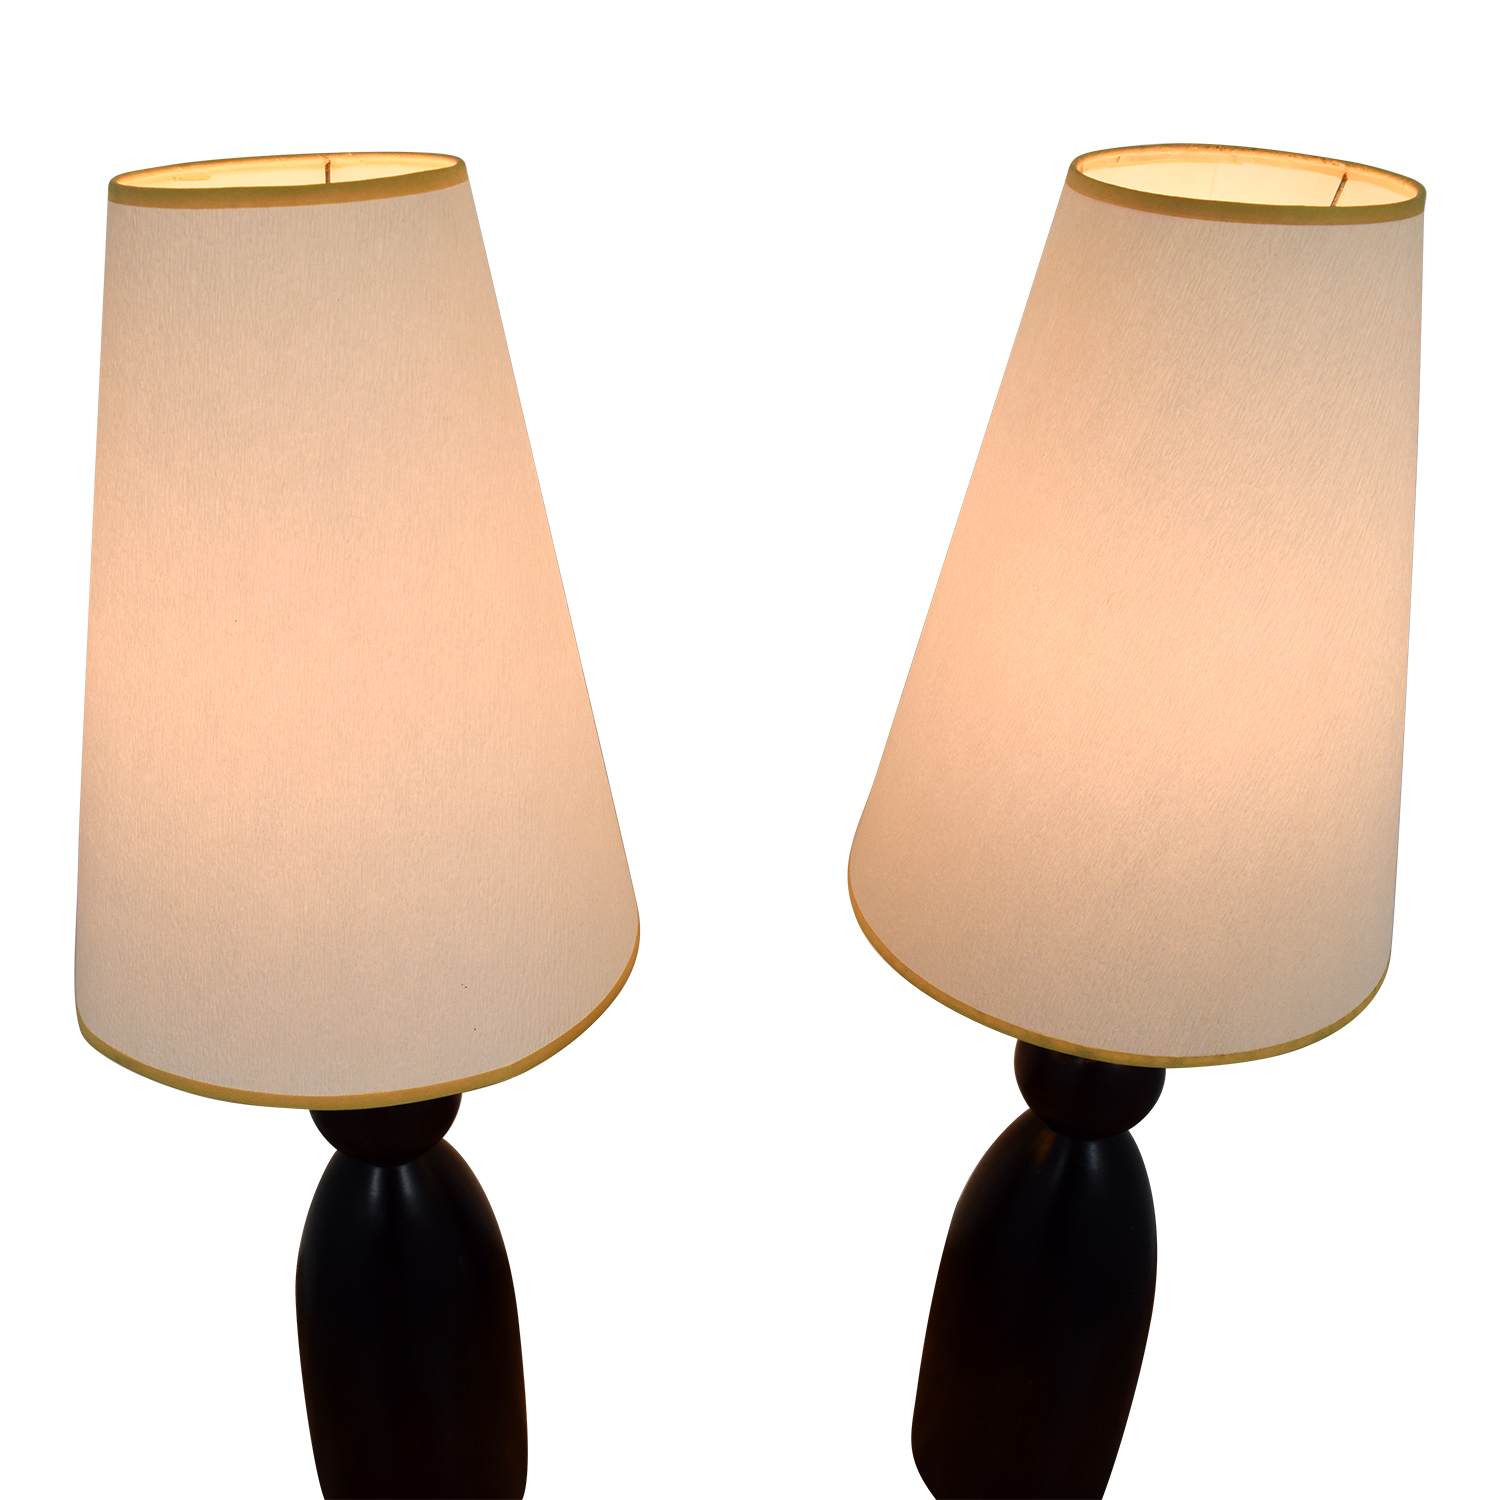 51 off ethan allen ethan allen mahogany table lamps decor shop ethan allen mahogany table lamps ethan allen lamps geotapseo Choice Image